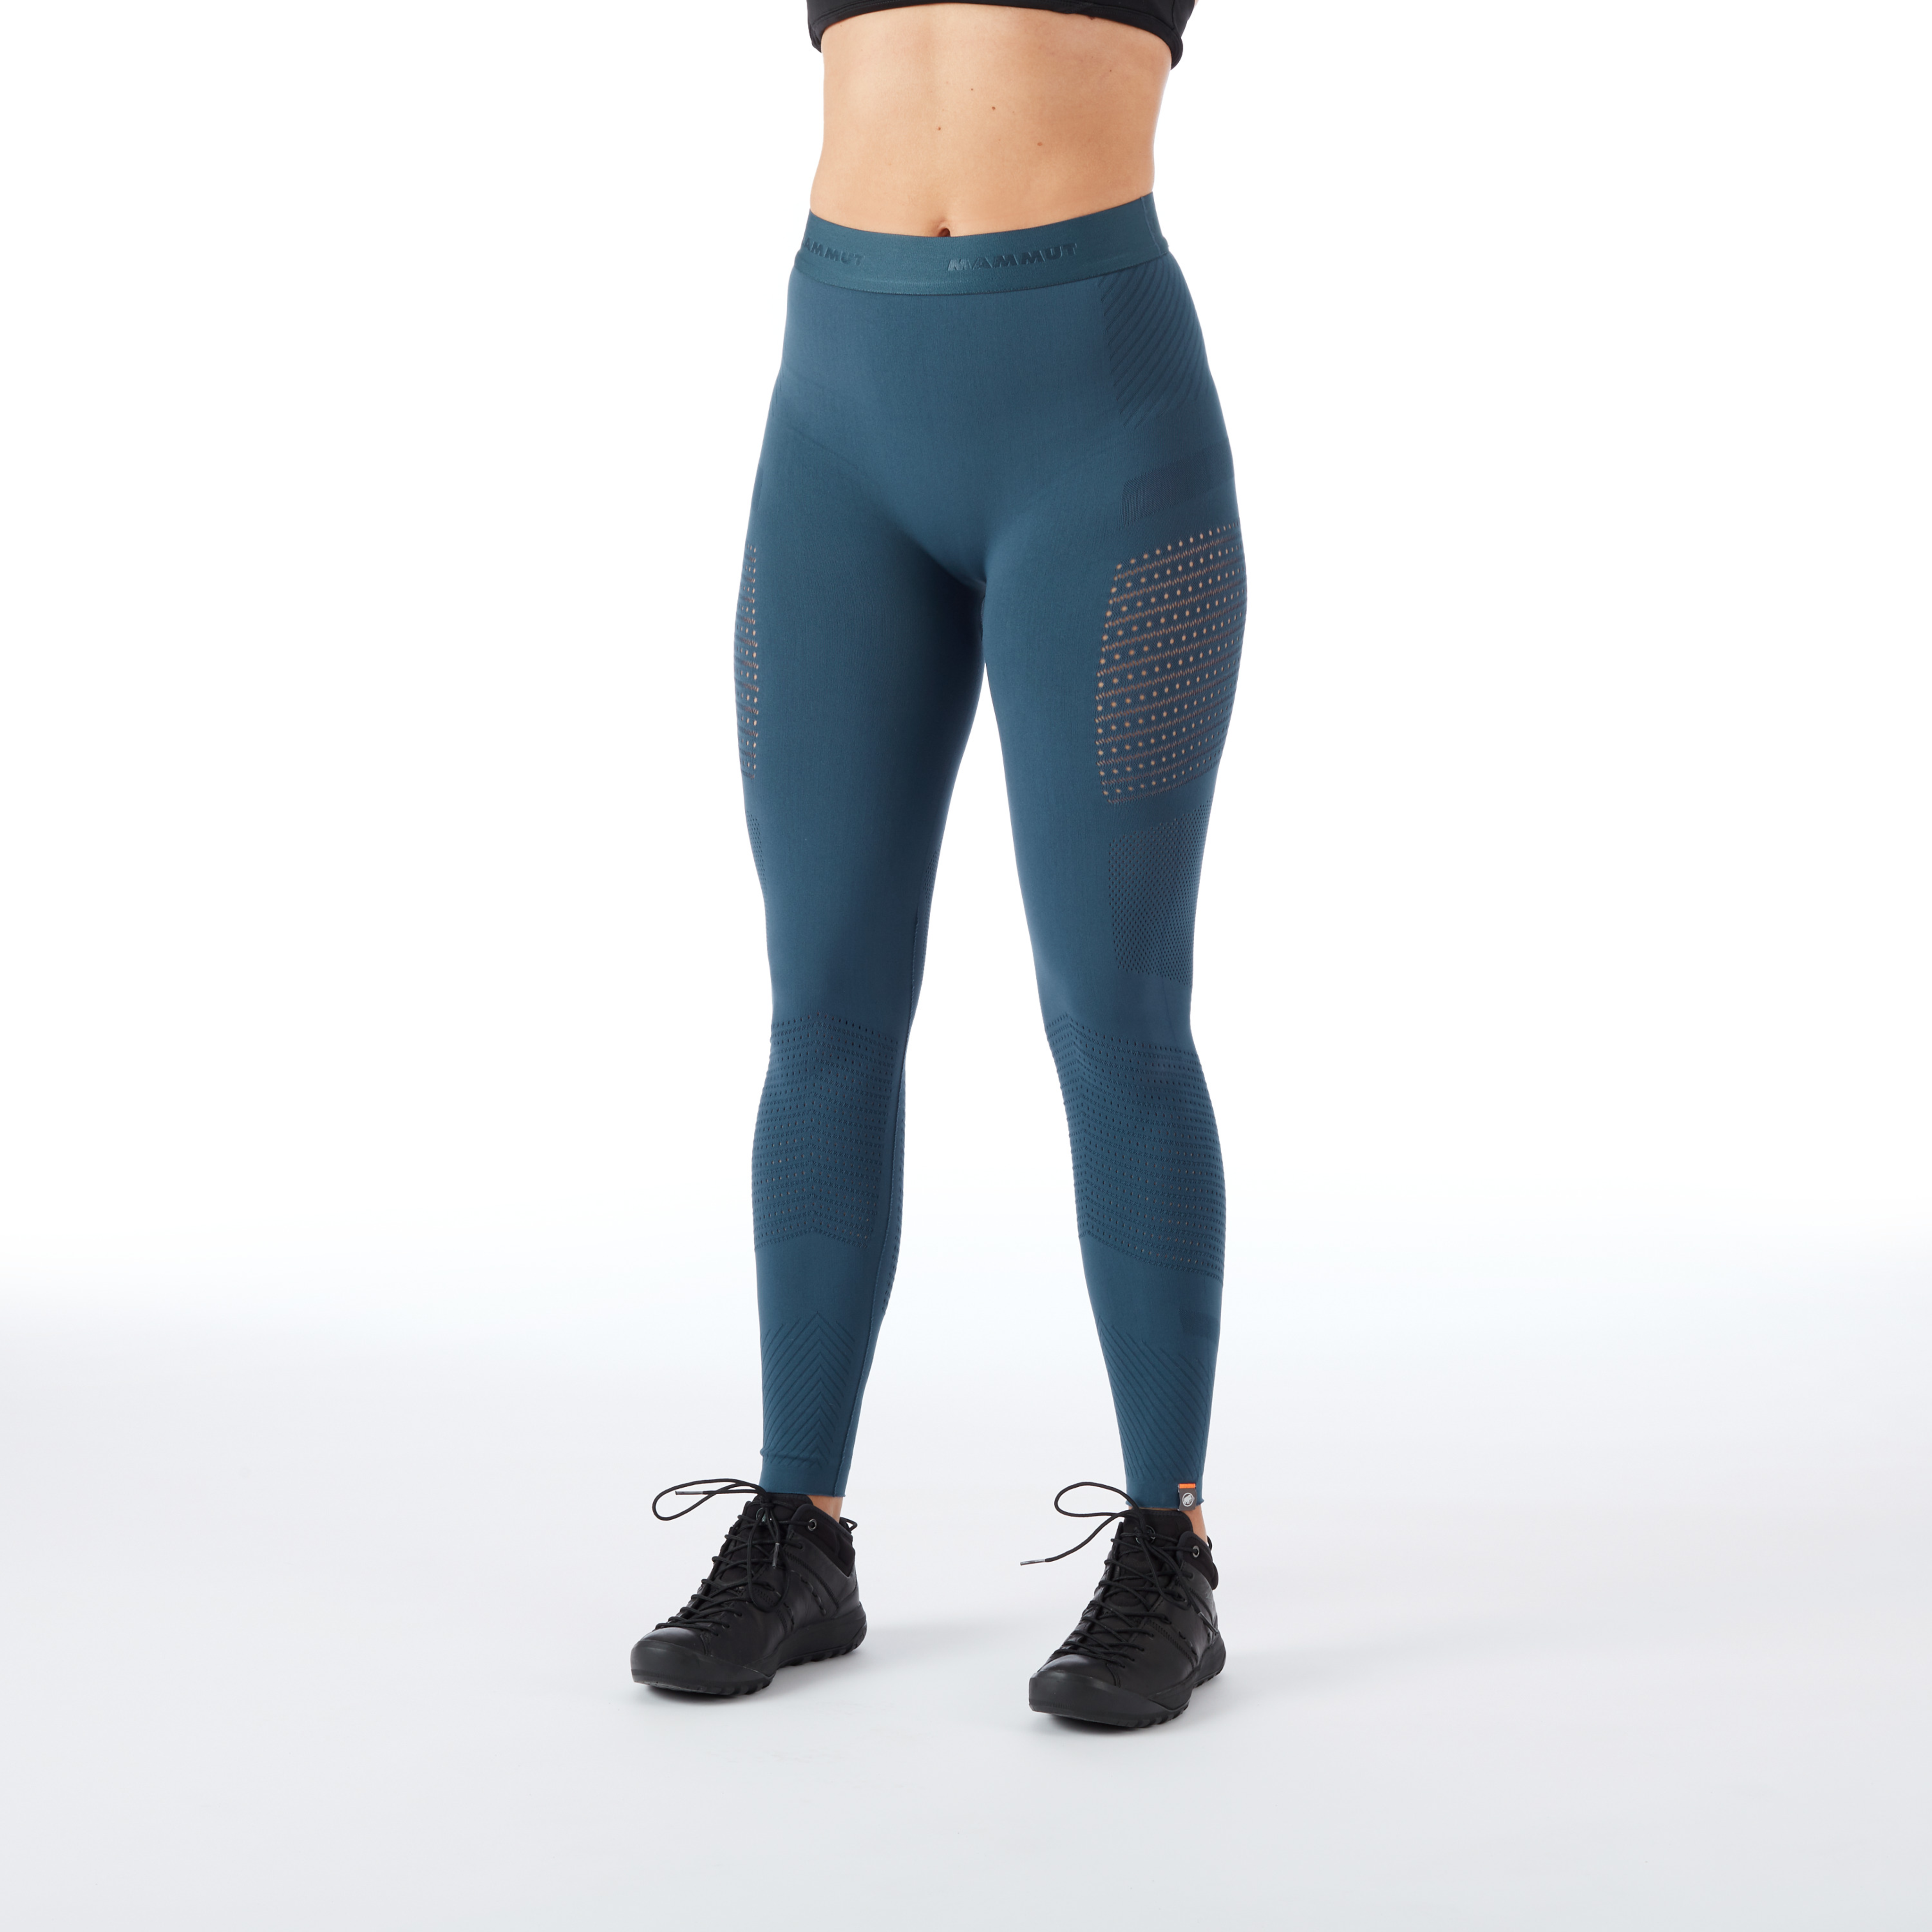 Aelectra Tights Women product image